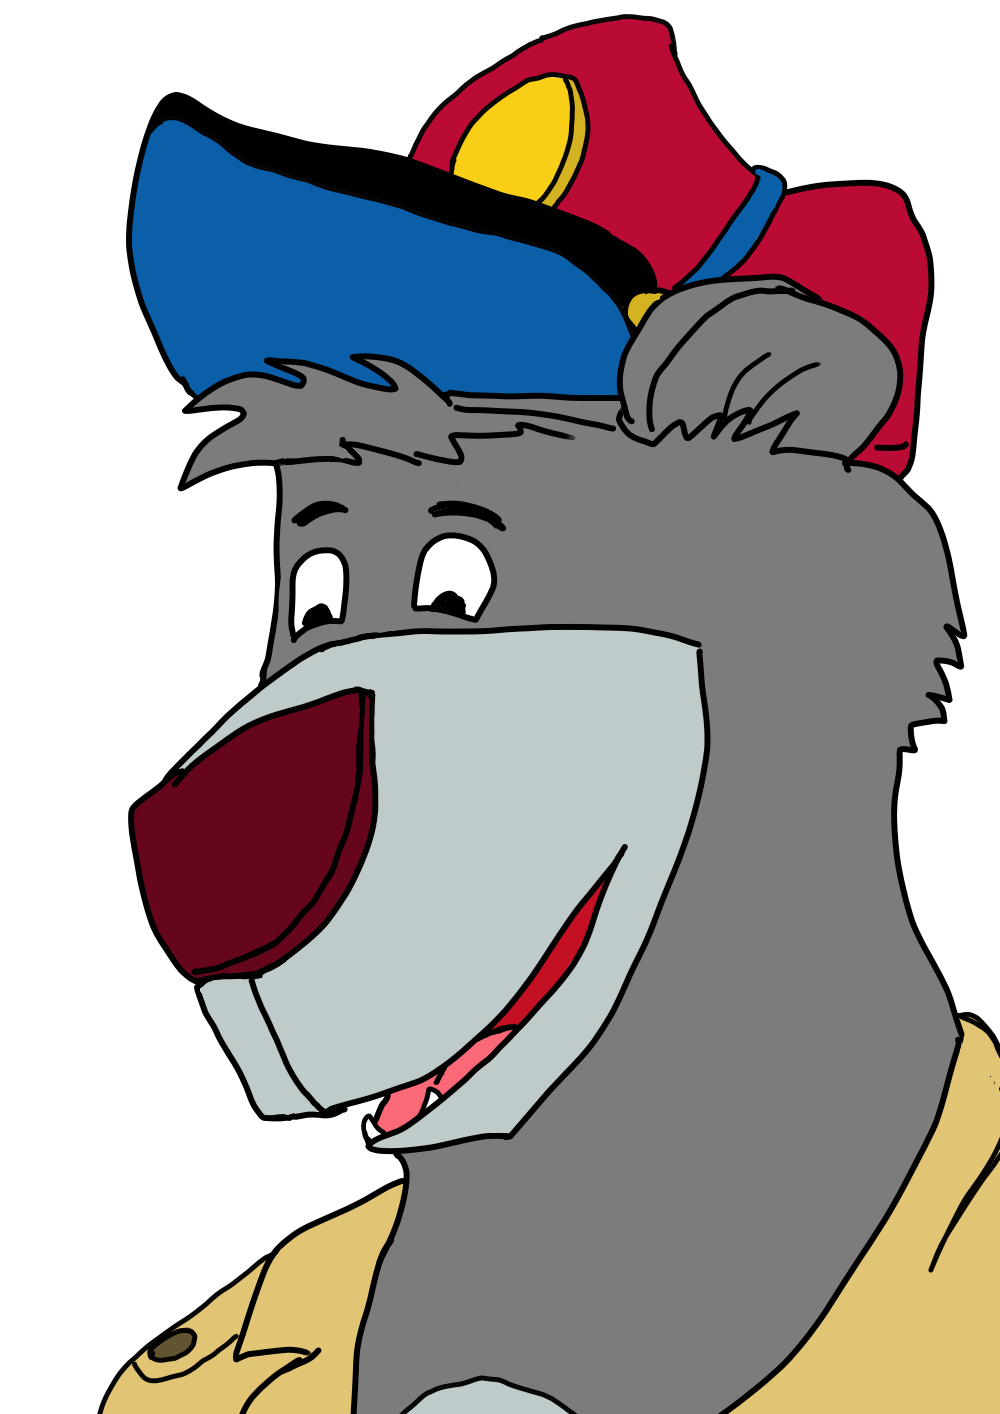 Other People's Characters – Baloo from Talespin